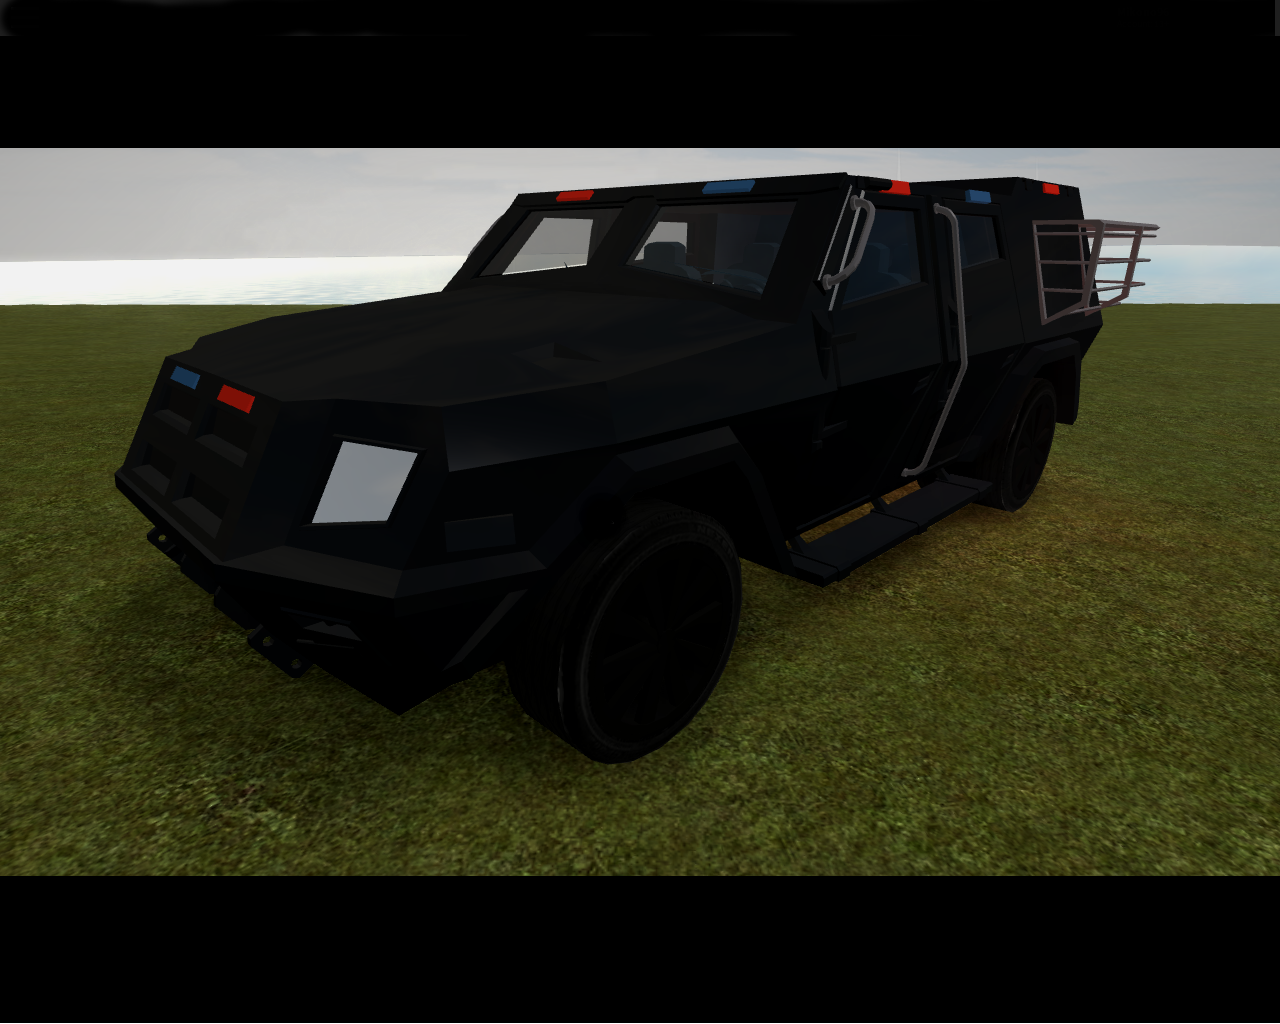 Top 5 Fastest Cars >> Police Bearcat | Roblox Vehicle Simulator Wiki | FANDOM powered by Wikia